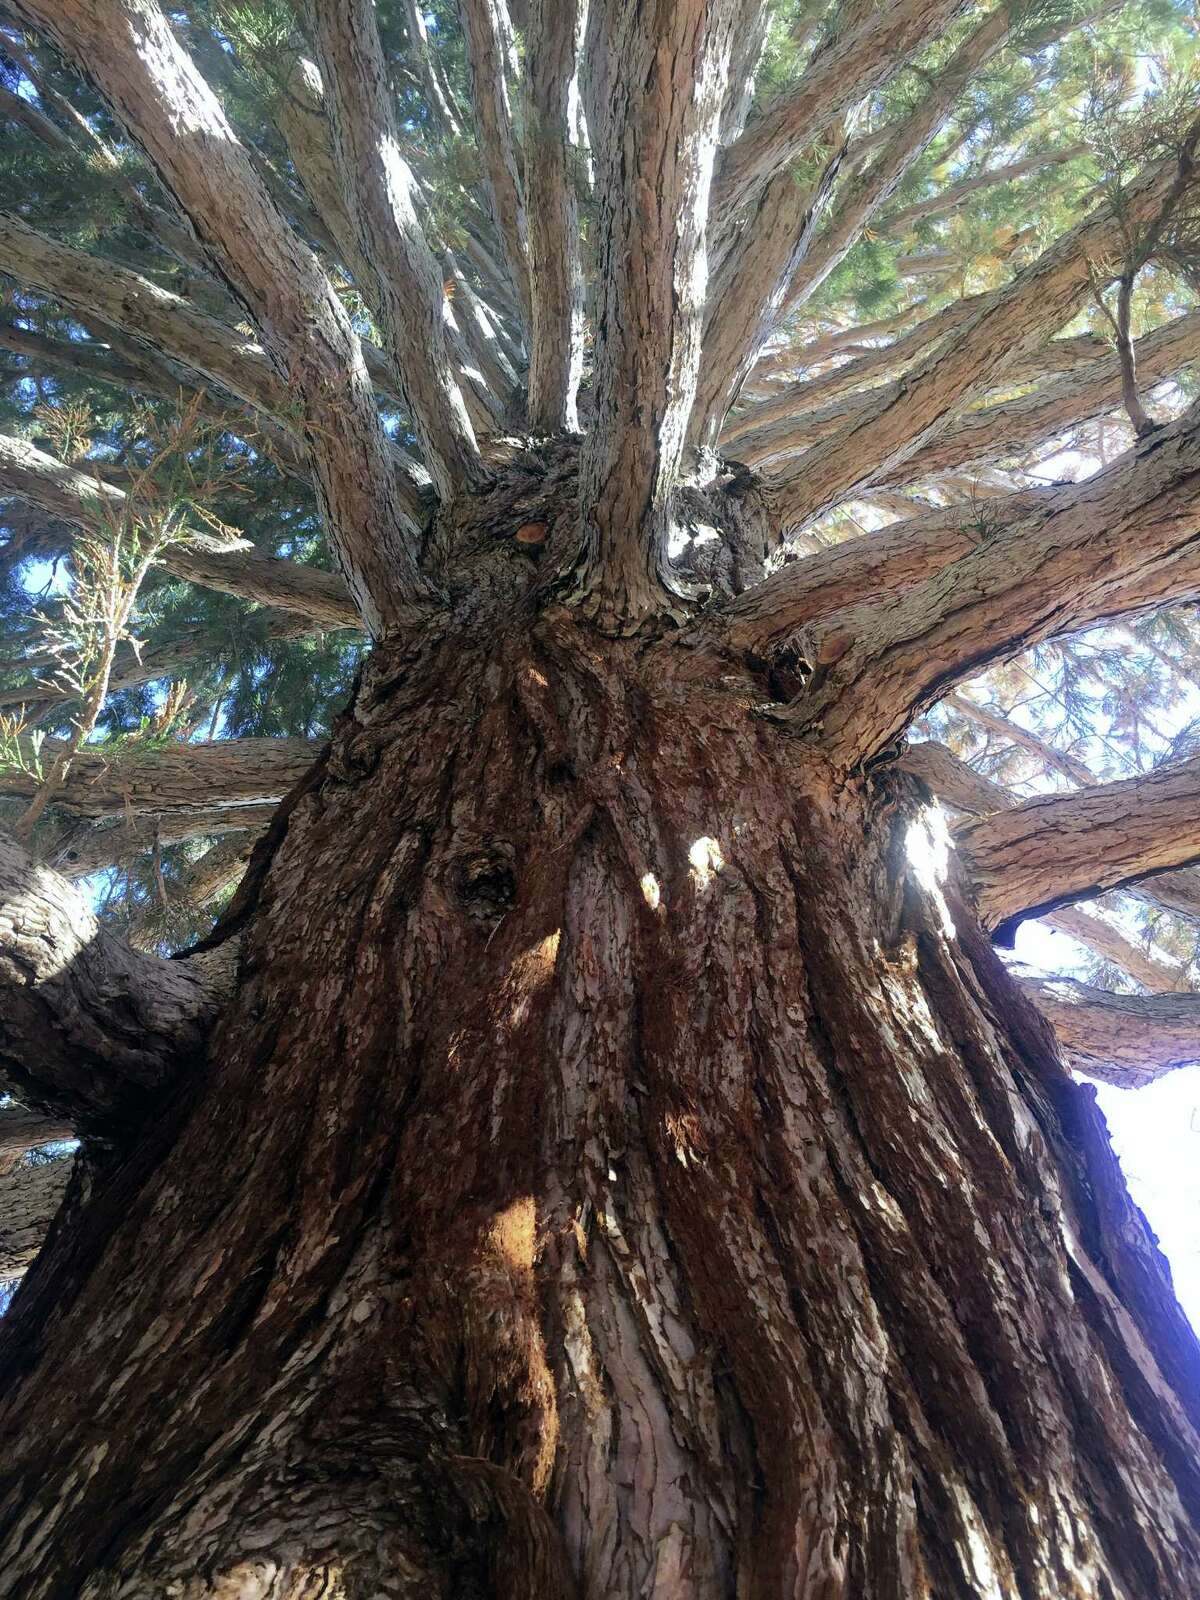 A roughly 100-foot sequoia tree is viewed looking upward from the base of the trunk in Boise, Idaho, Friday, June 23, 2017. The sequoia tree sent more than a century ago by naturalist John Muir to Idaho and planted in a Boise medical doctor's yard has become an obstacle to progress. So the sequoia planted in 1912 and that's in the way of a Boise hospital's expansion is being uprooted and moved about a block to city property this weekend.